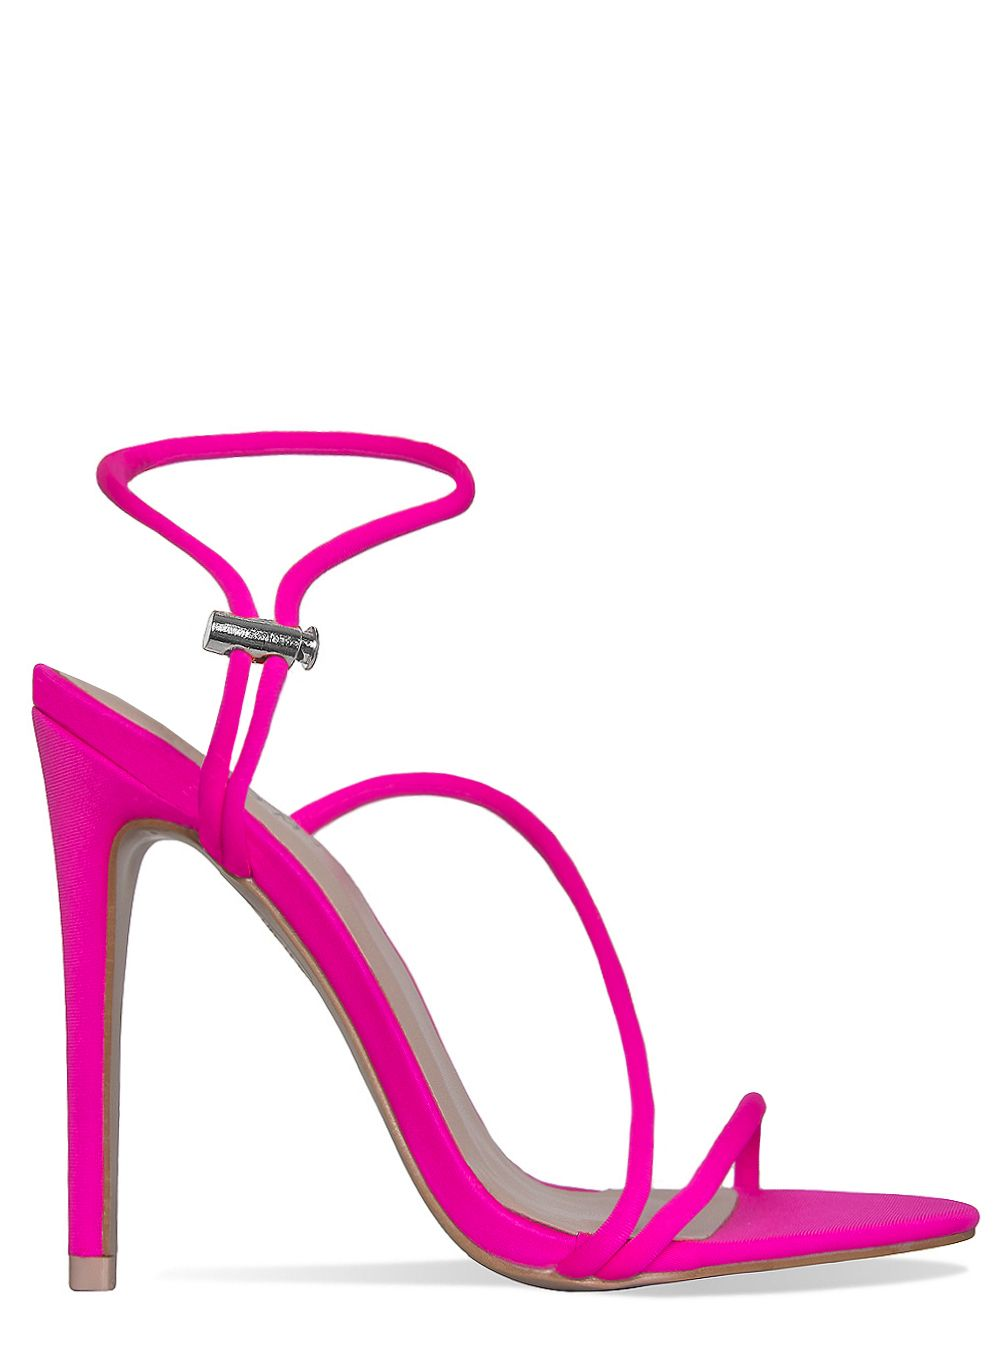 run shoes classic uk availability Cherry Neon Pink Strappy Toggle Heels